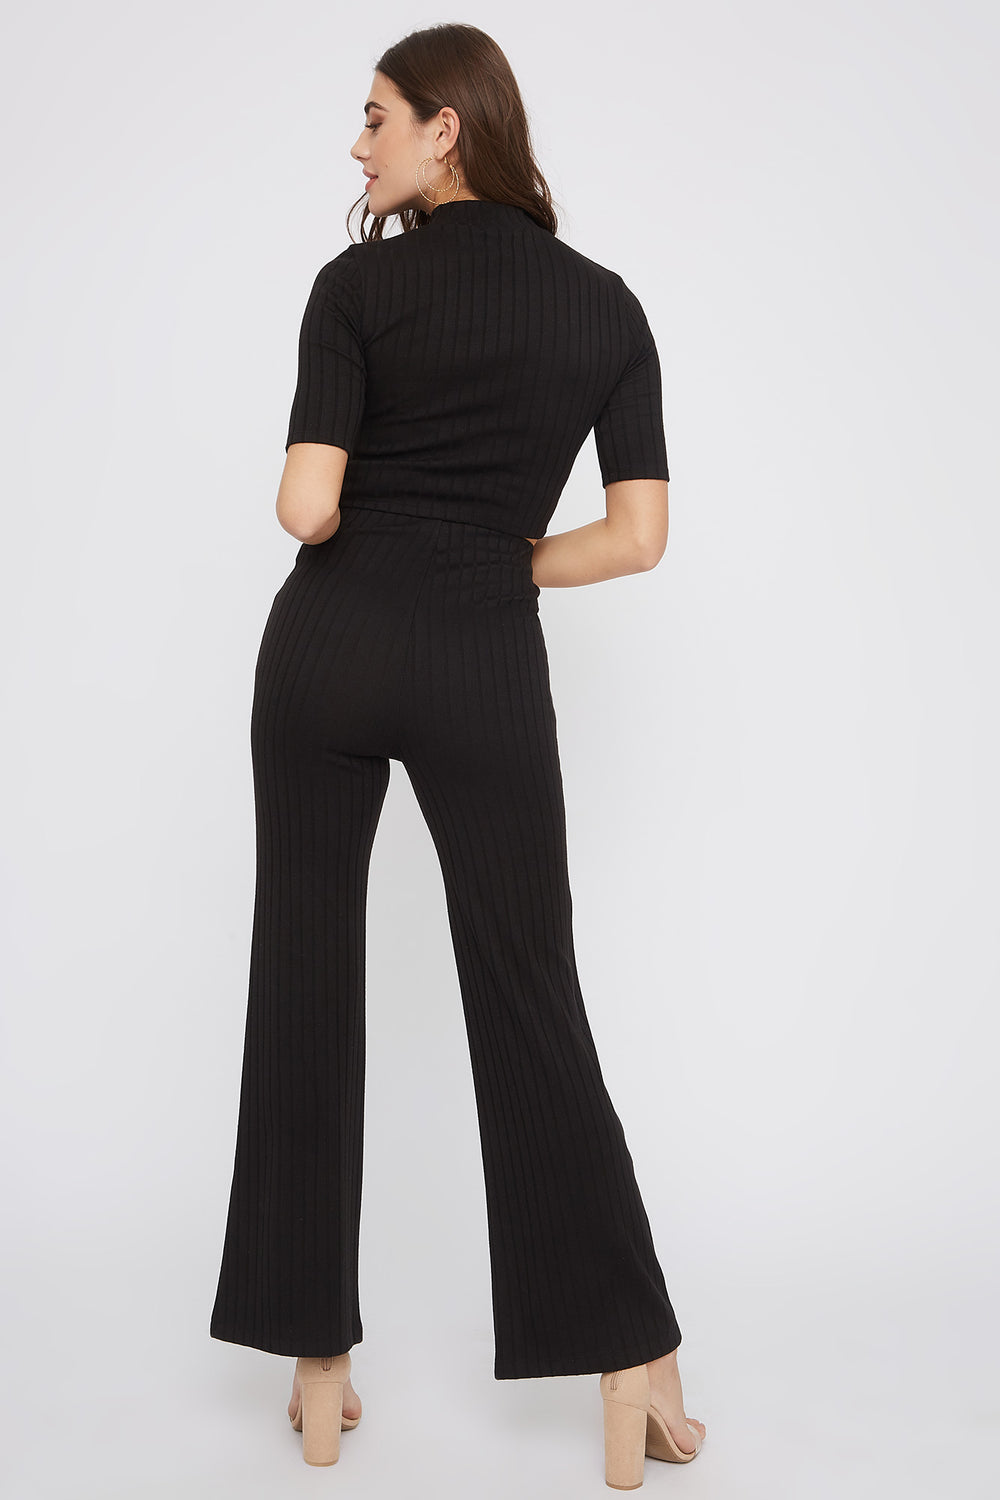 Ribbed High-Rise Flare Pant Black